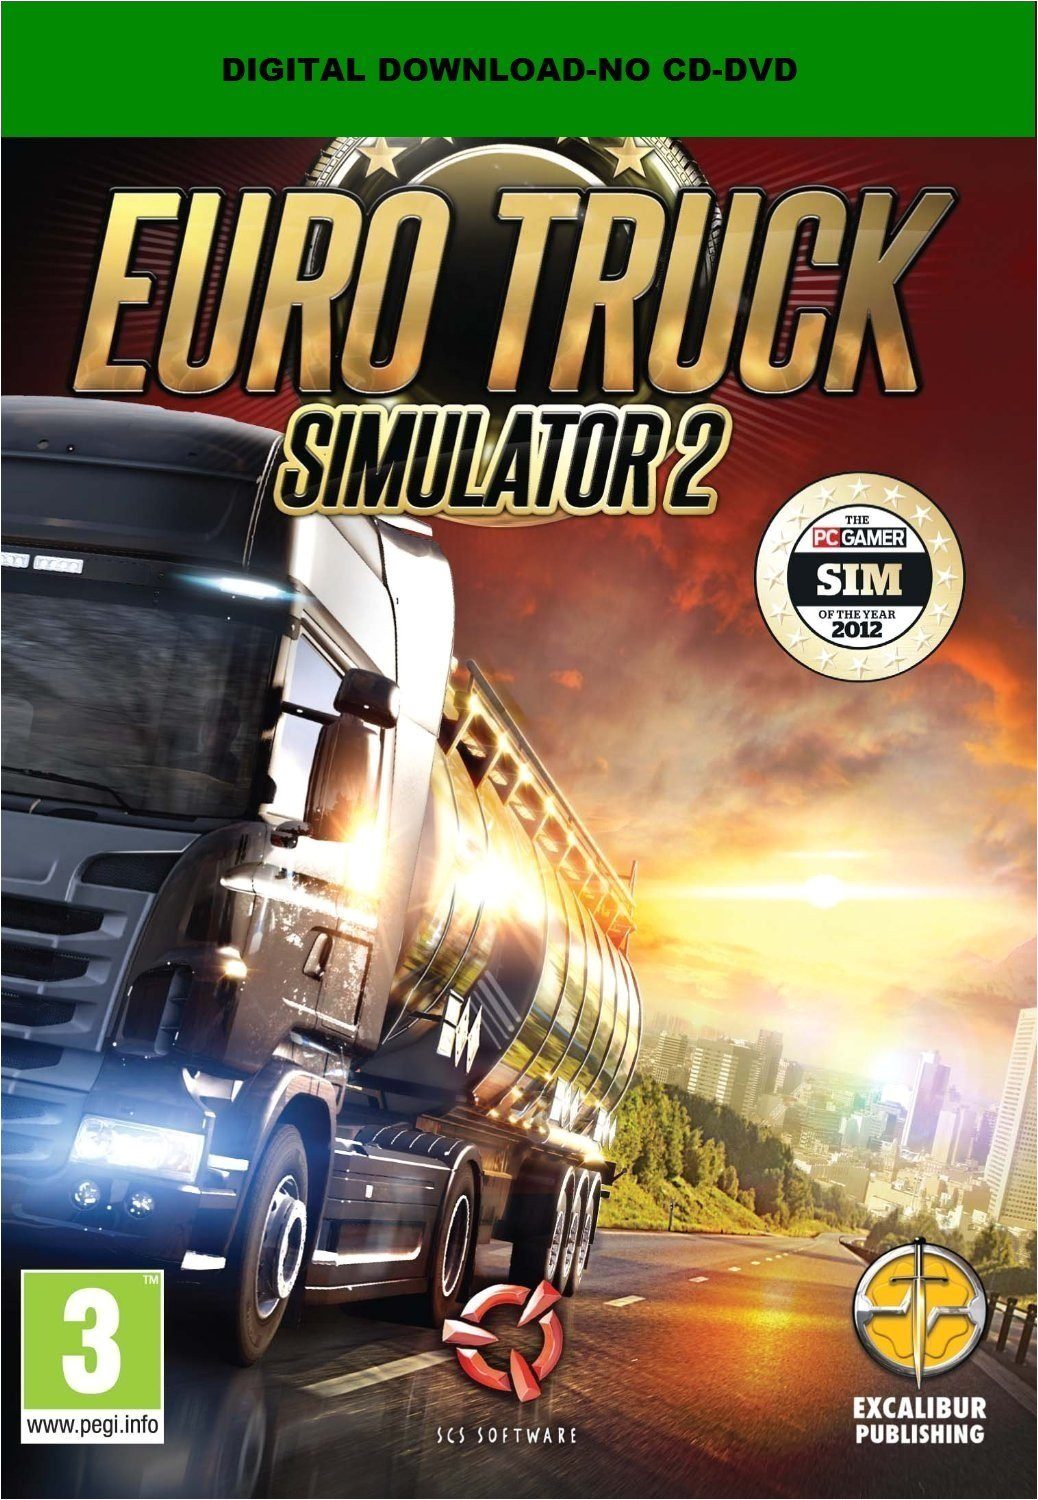 buy euro truck simulator 2 pc code online at low prices in india scs software video games amazon in